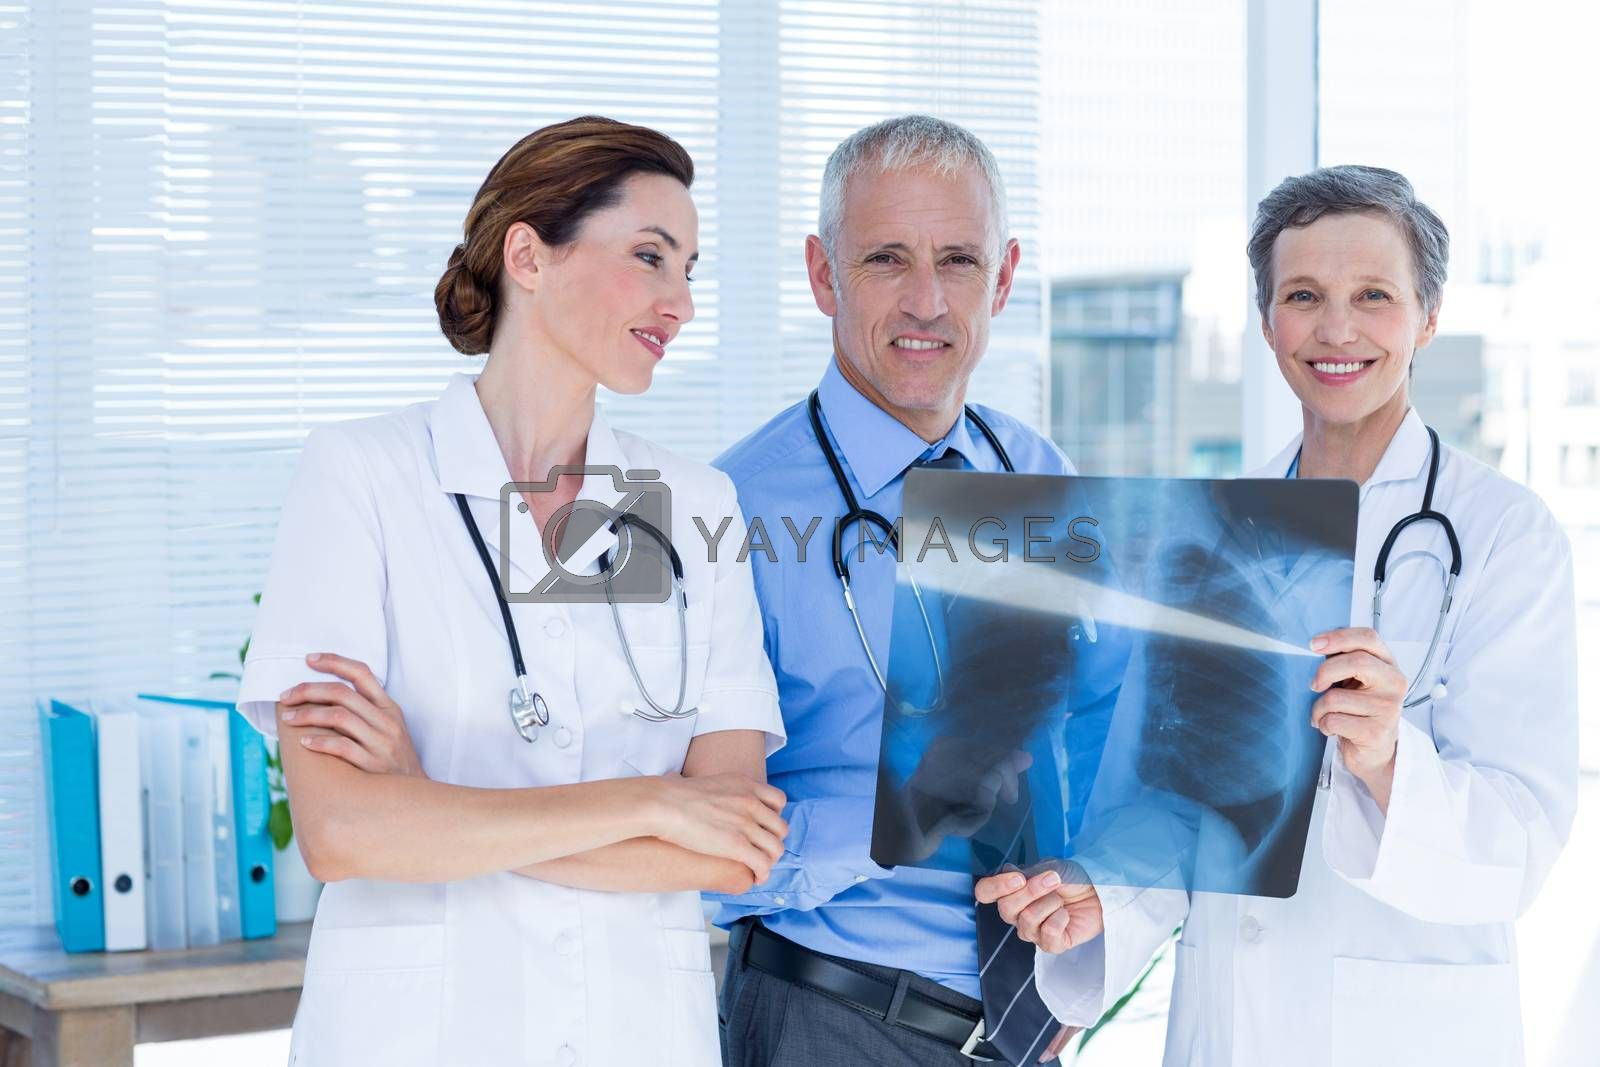 Royalty free image of Portrait of smiling medical colleagues examining x-ray together by Wavebreakmedia